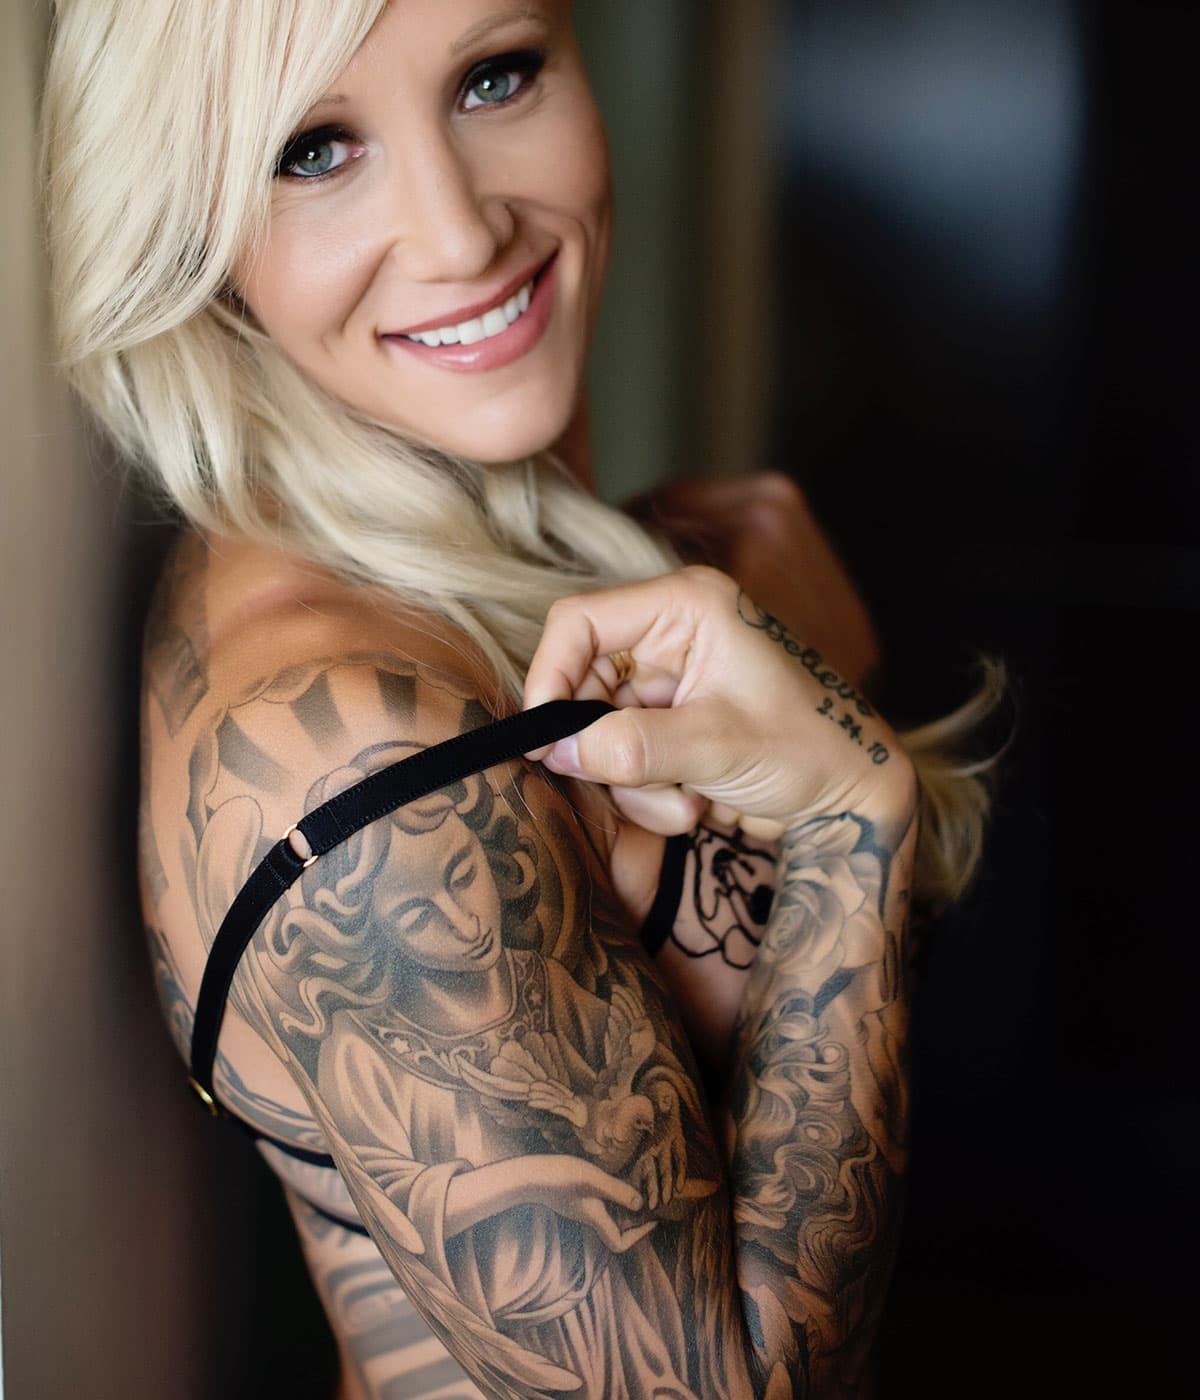 Kaillie Humphries: 'I'm proud of my body'